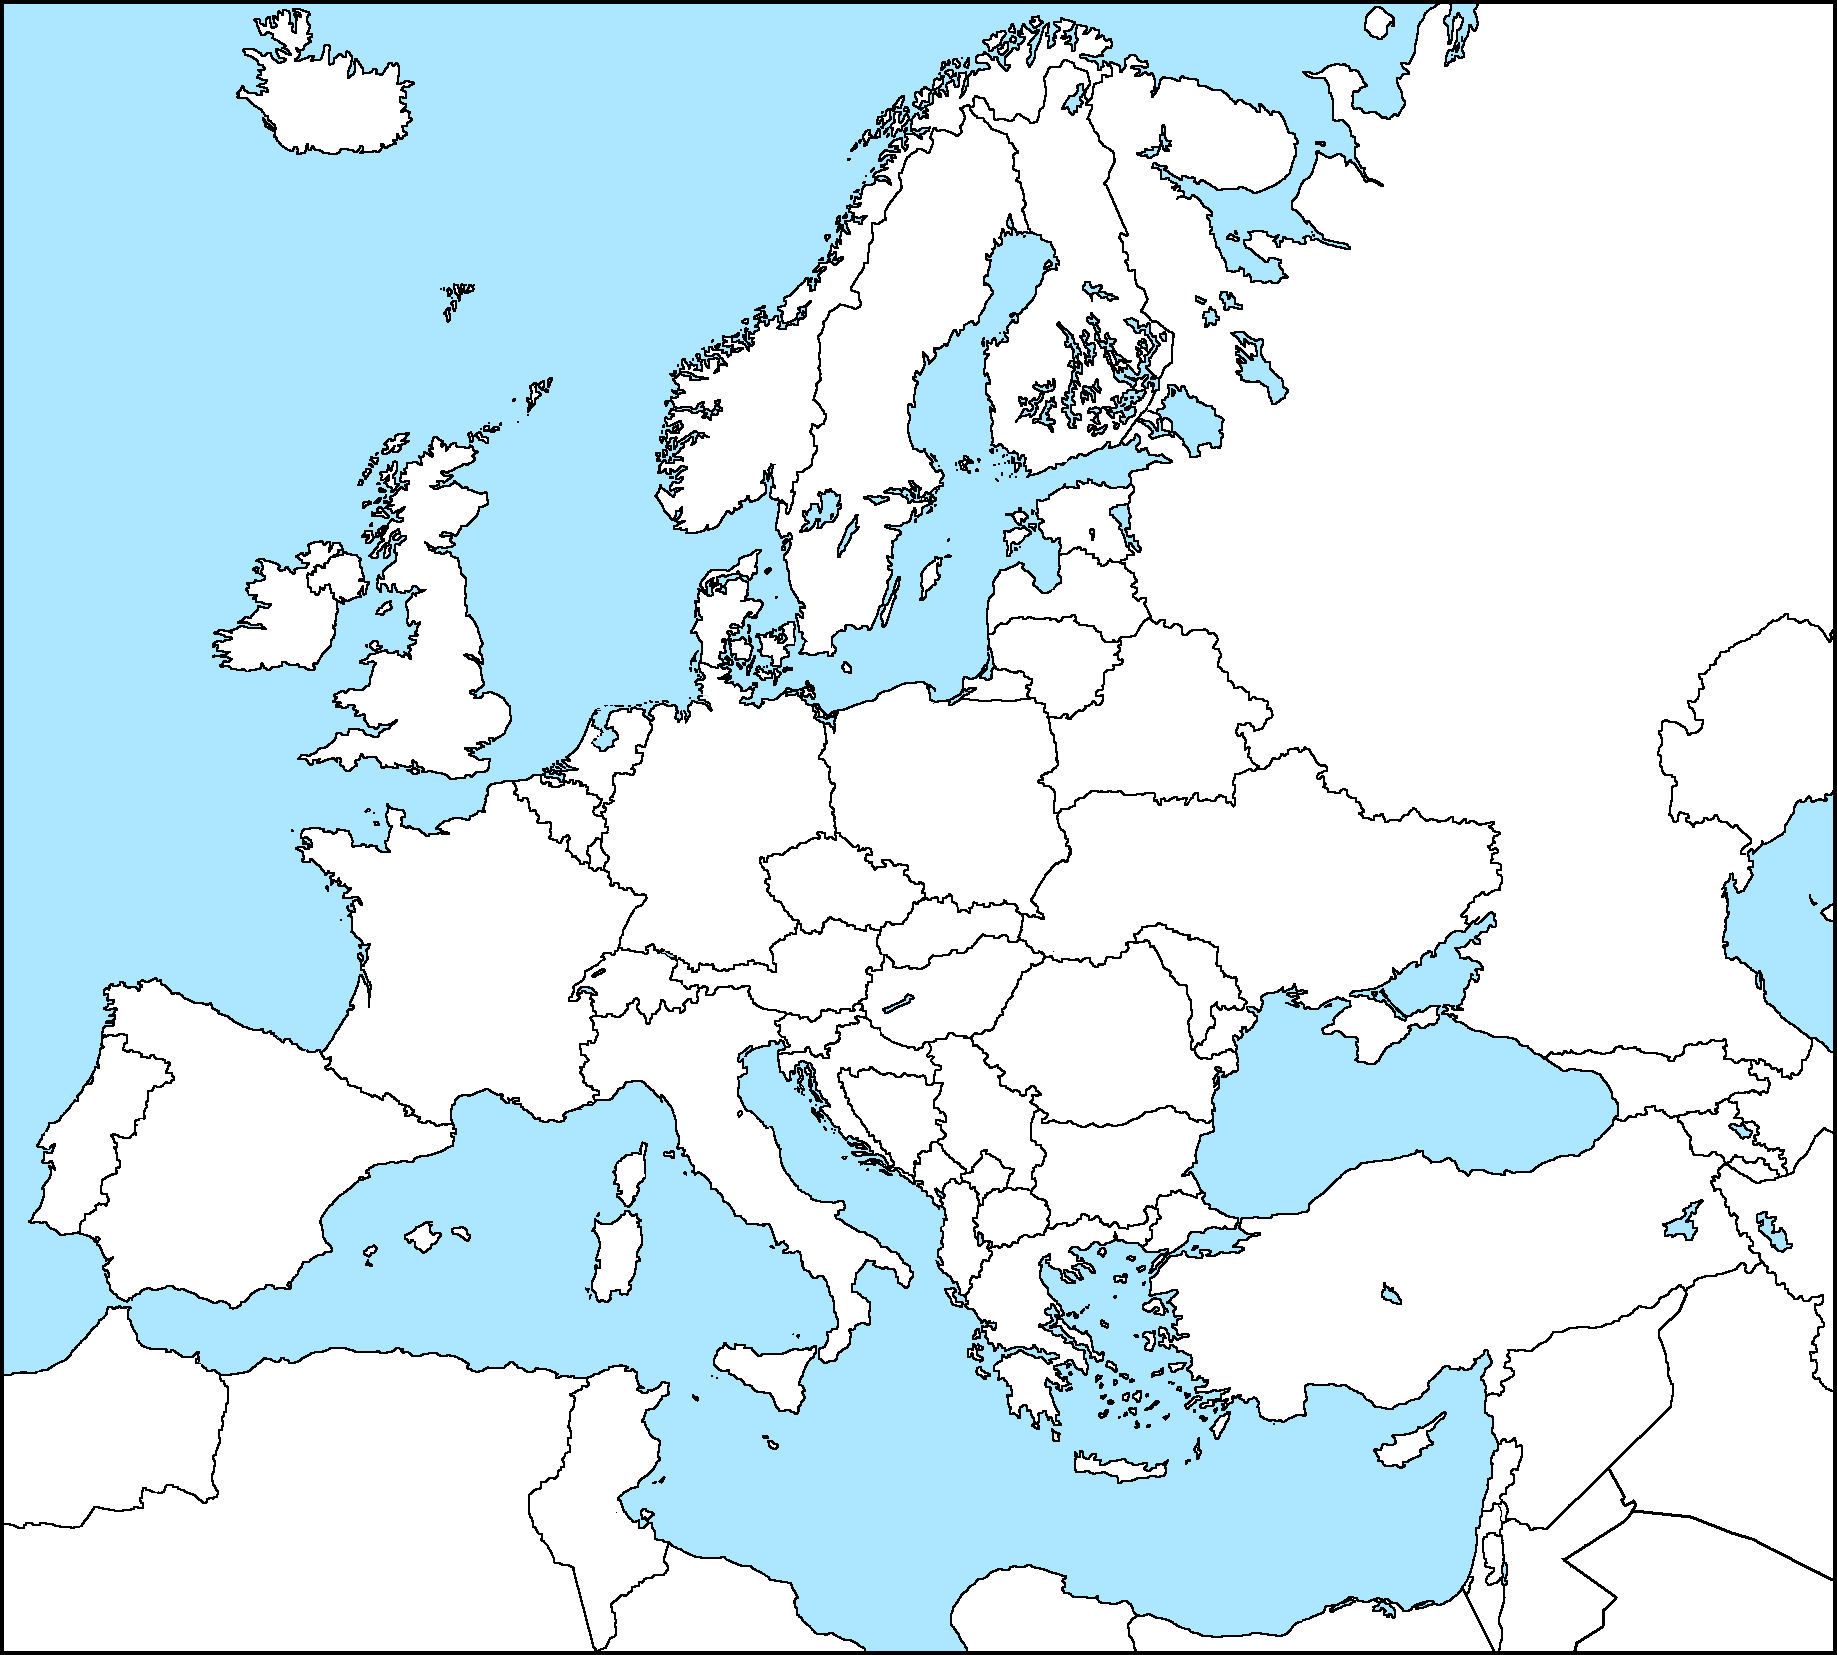 Blank Map of Europe 2015 by xGeograd on DeviantArt